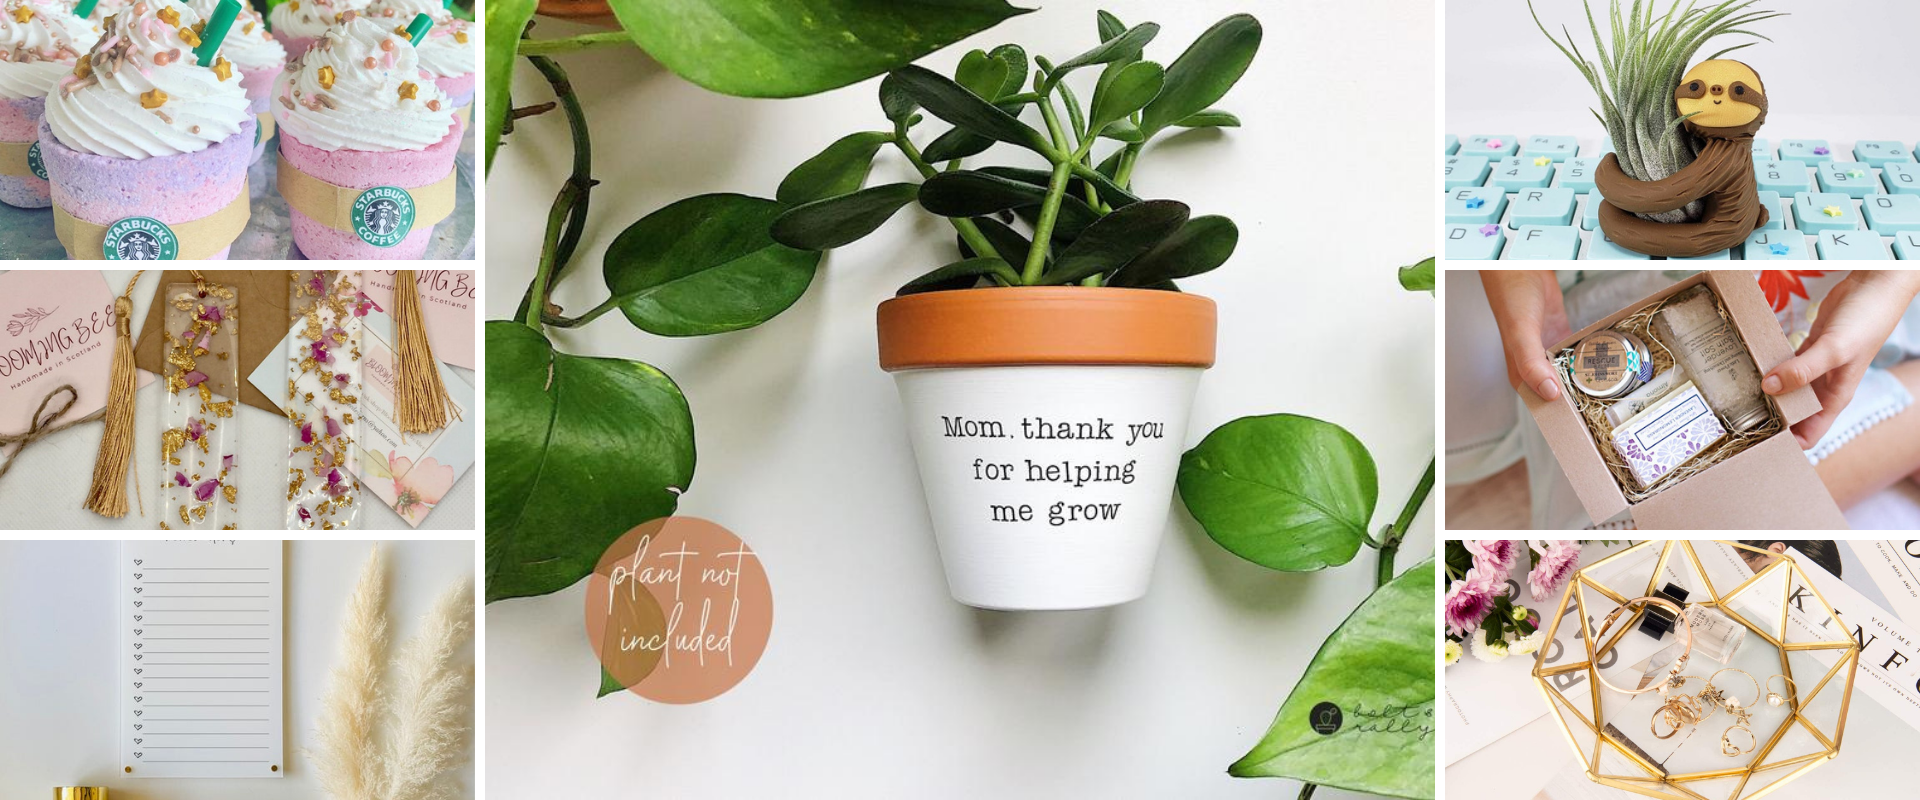 25 best gifts ideas under $35 for mothers day that she'll actually enjoy